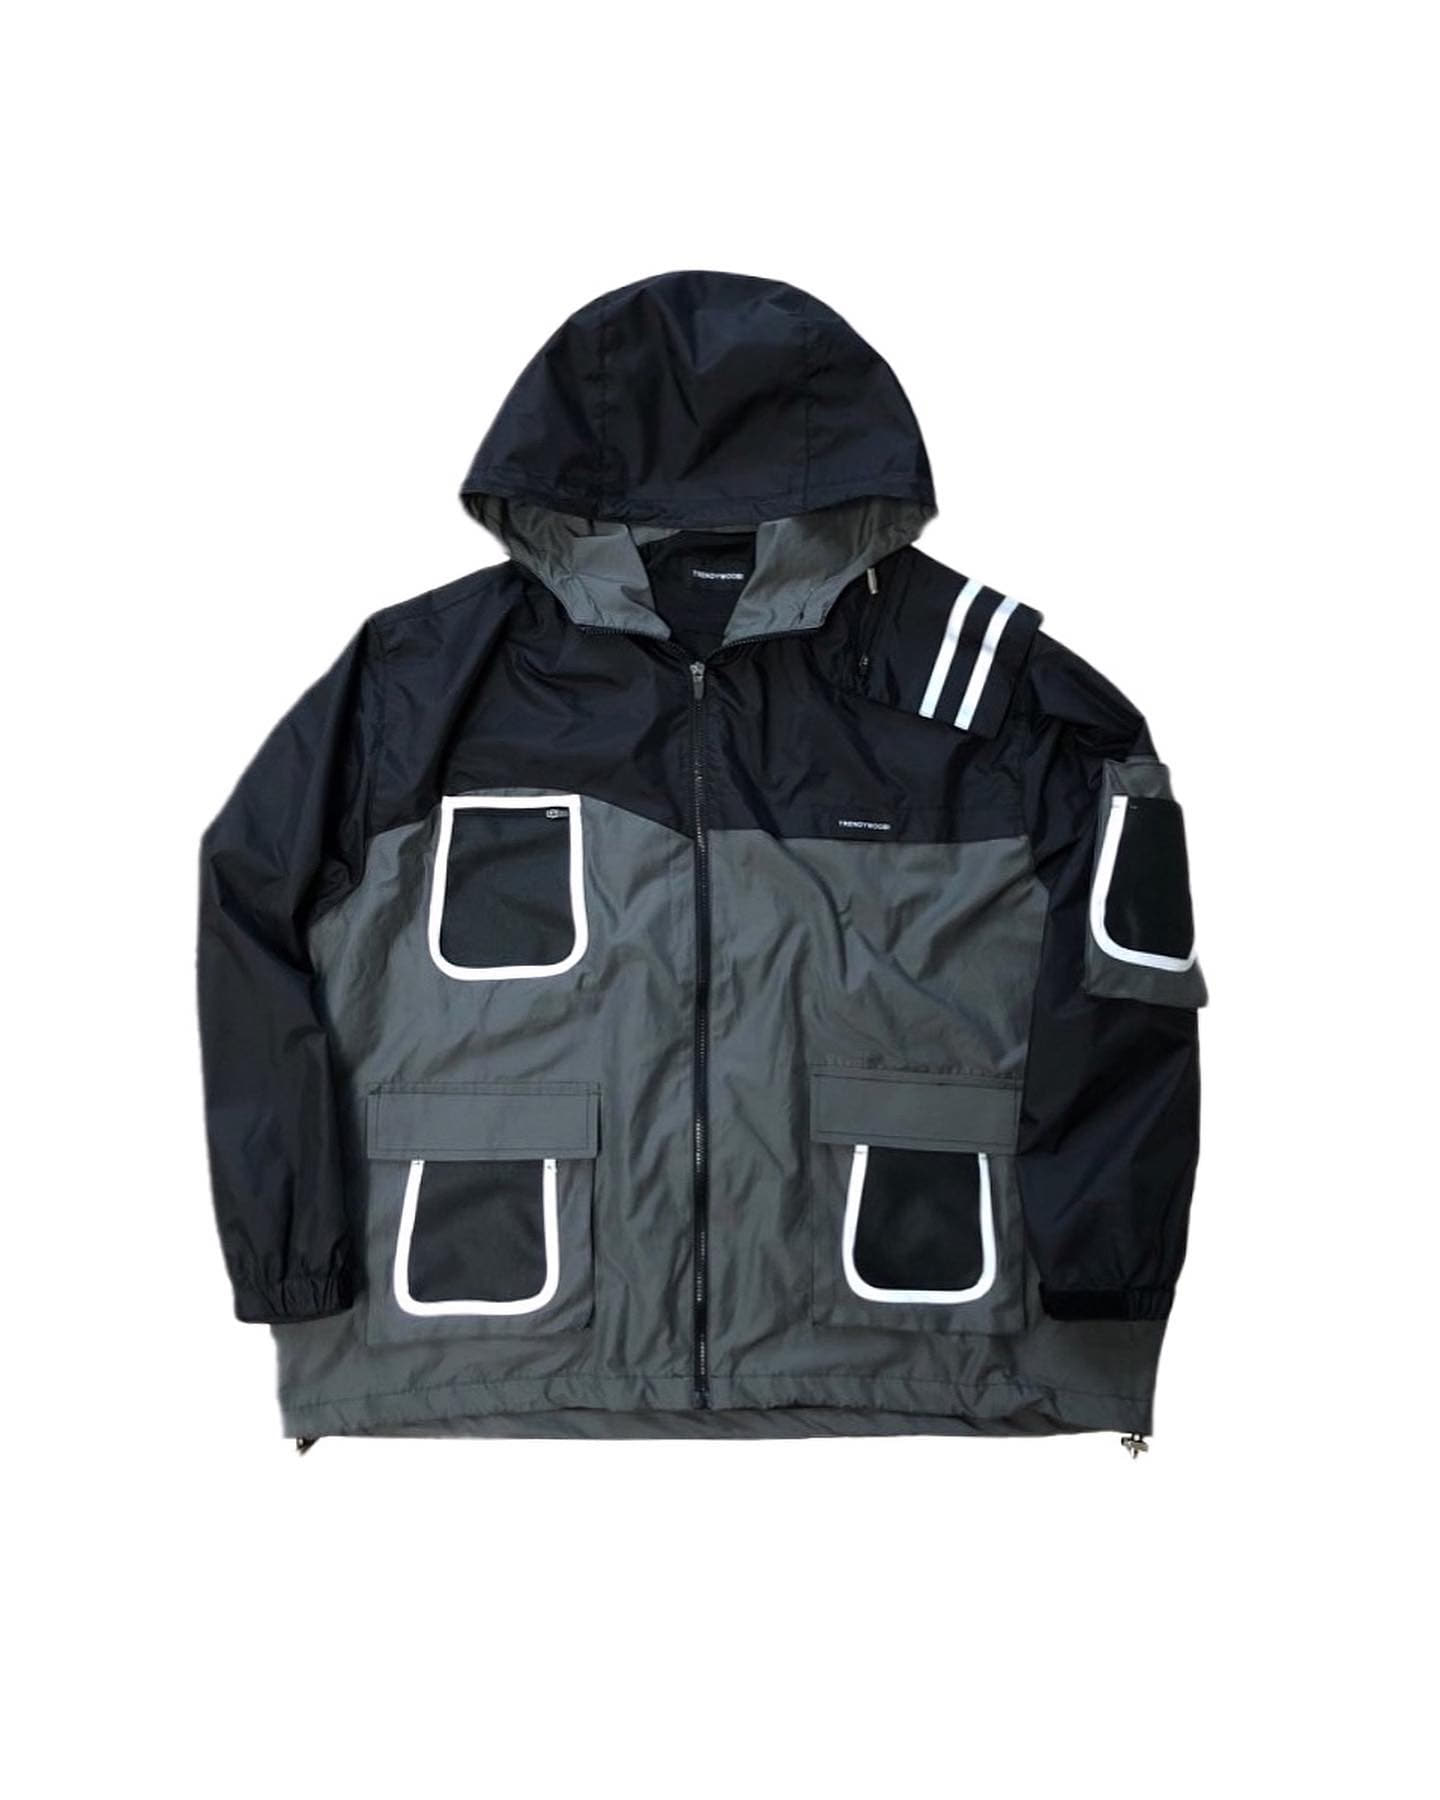 Point Pocket jacket